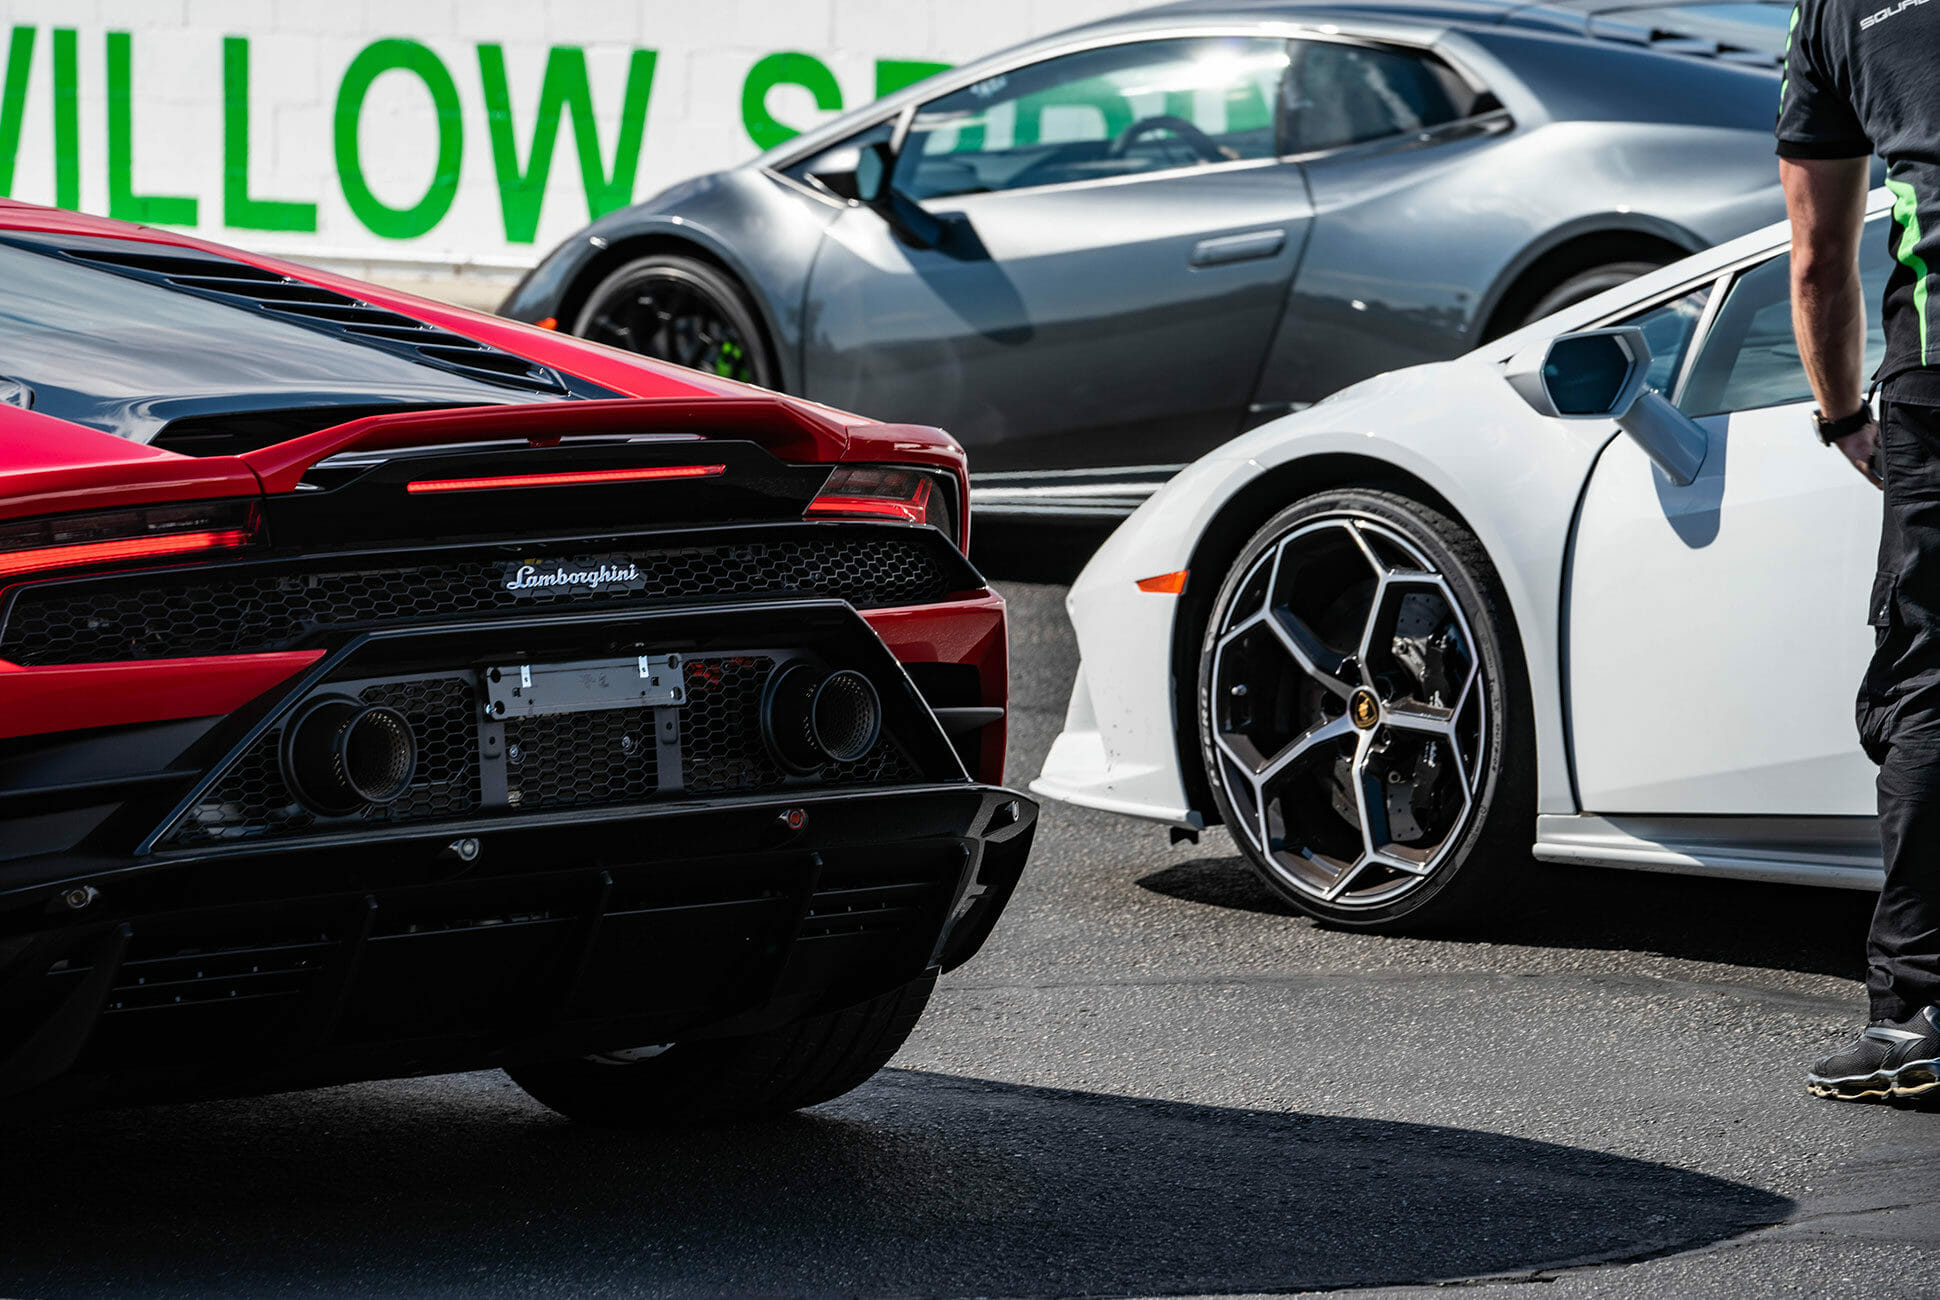 2020-Lamborghini-Huracan-EVO-Review-gear-patrol-slide-6